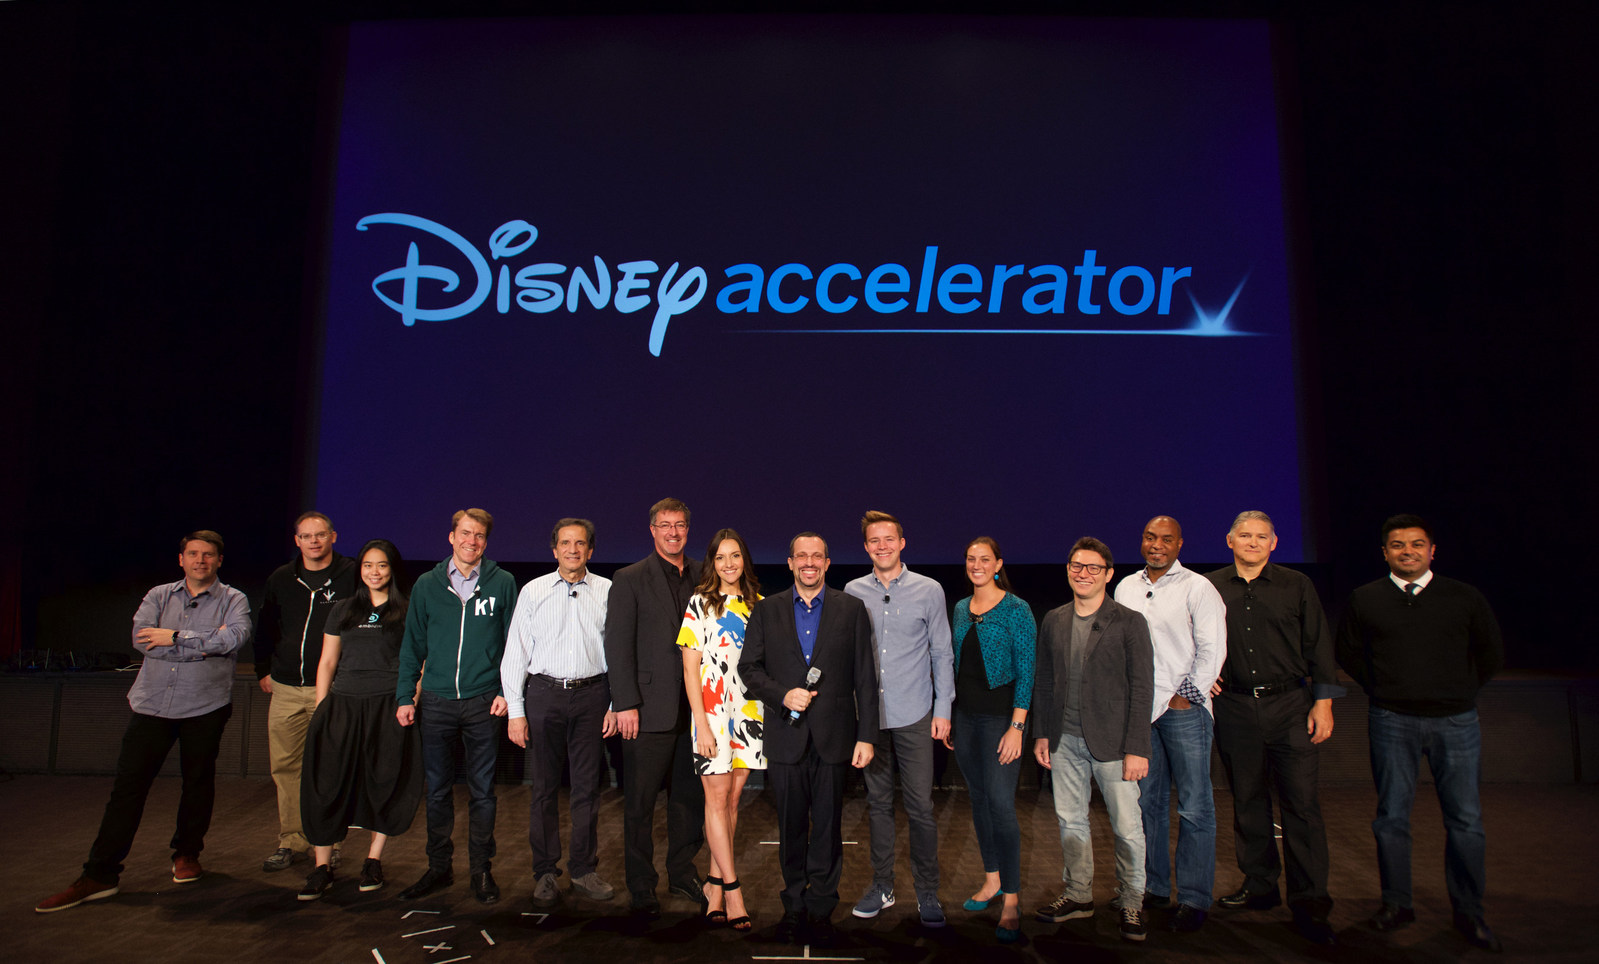 Disney Accelerator Showcases 11 Startups at 2017 Demo Day